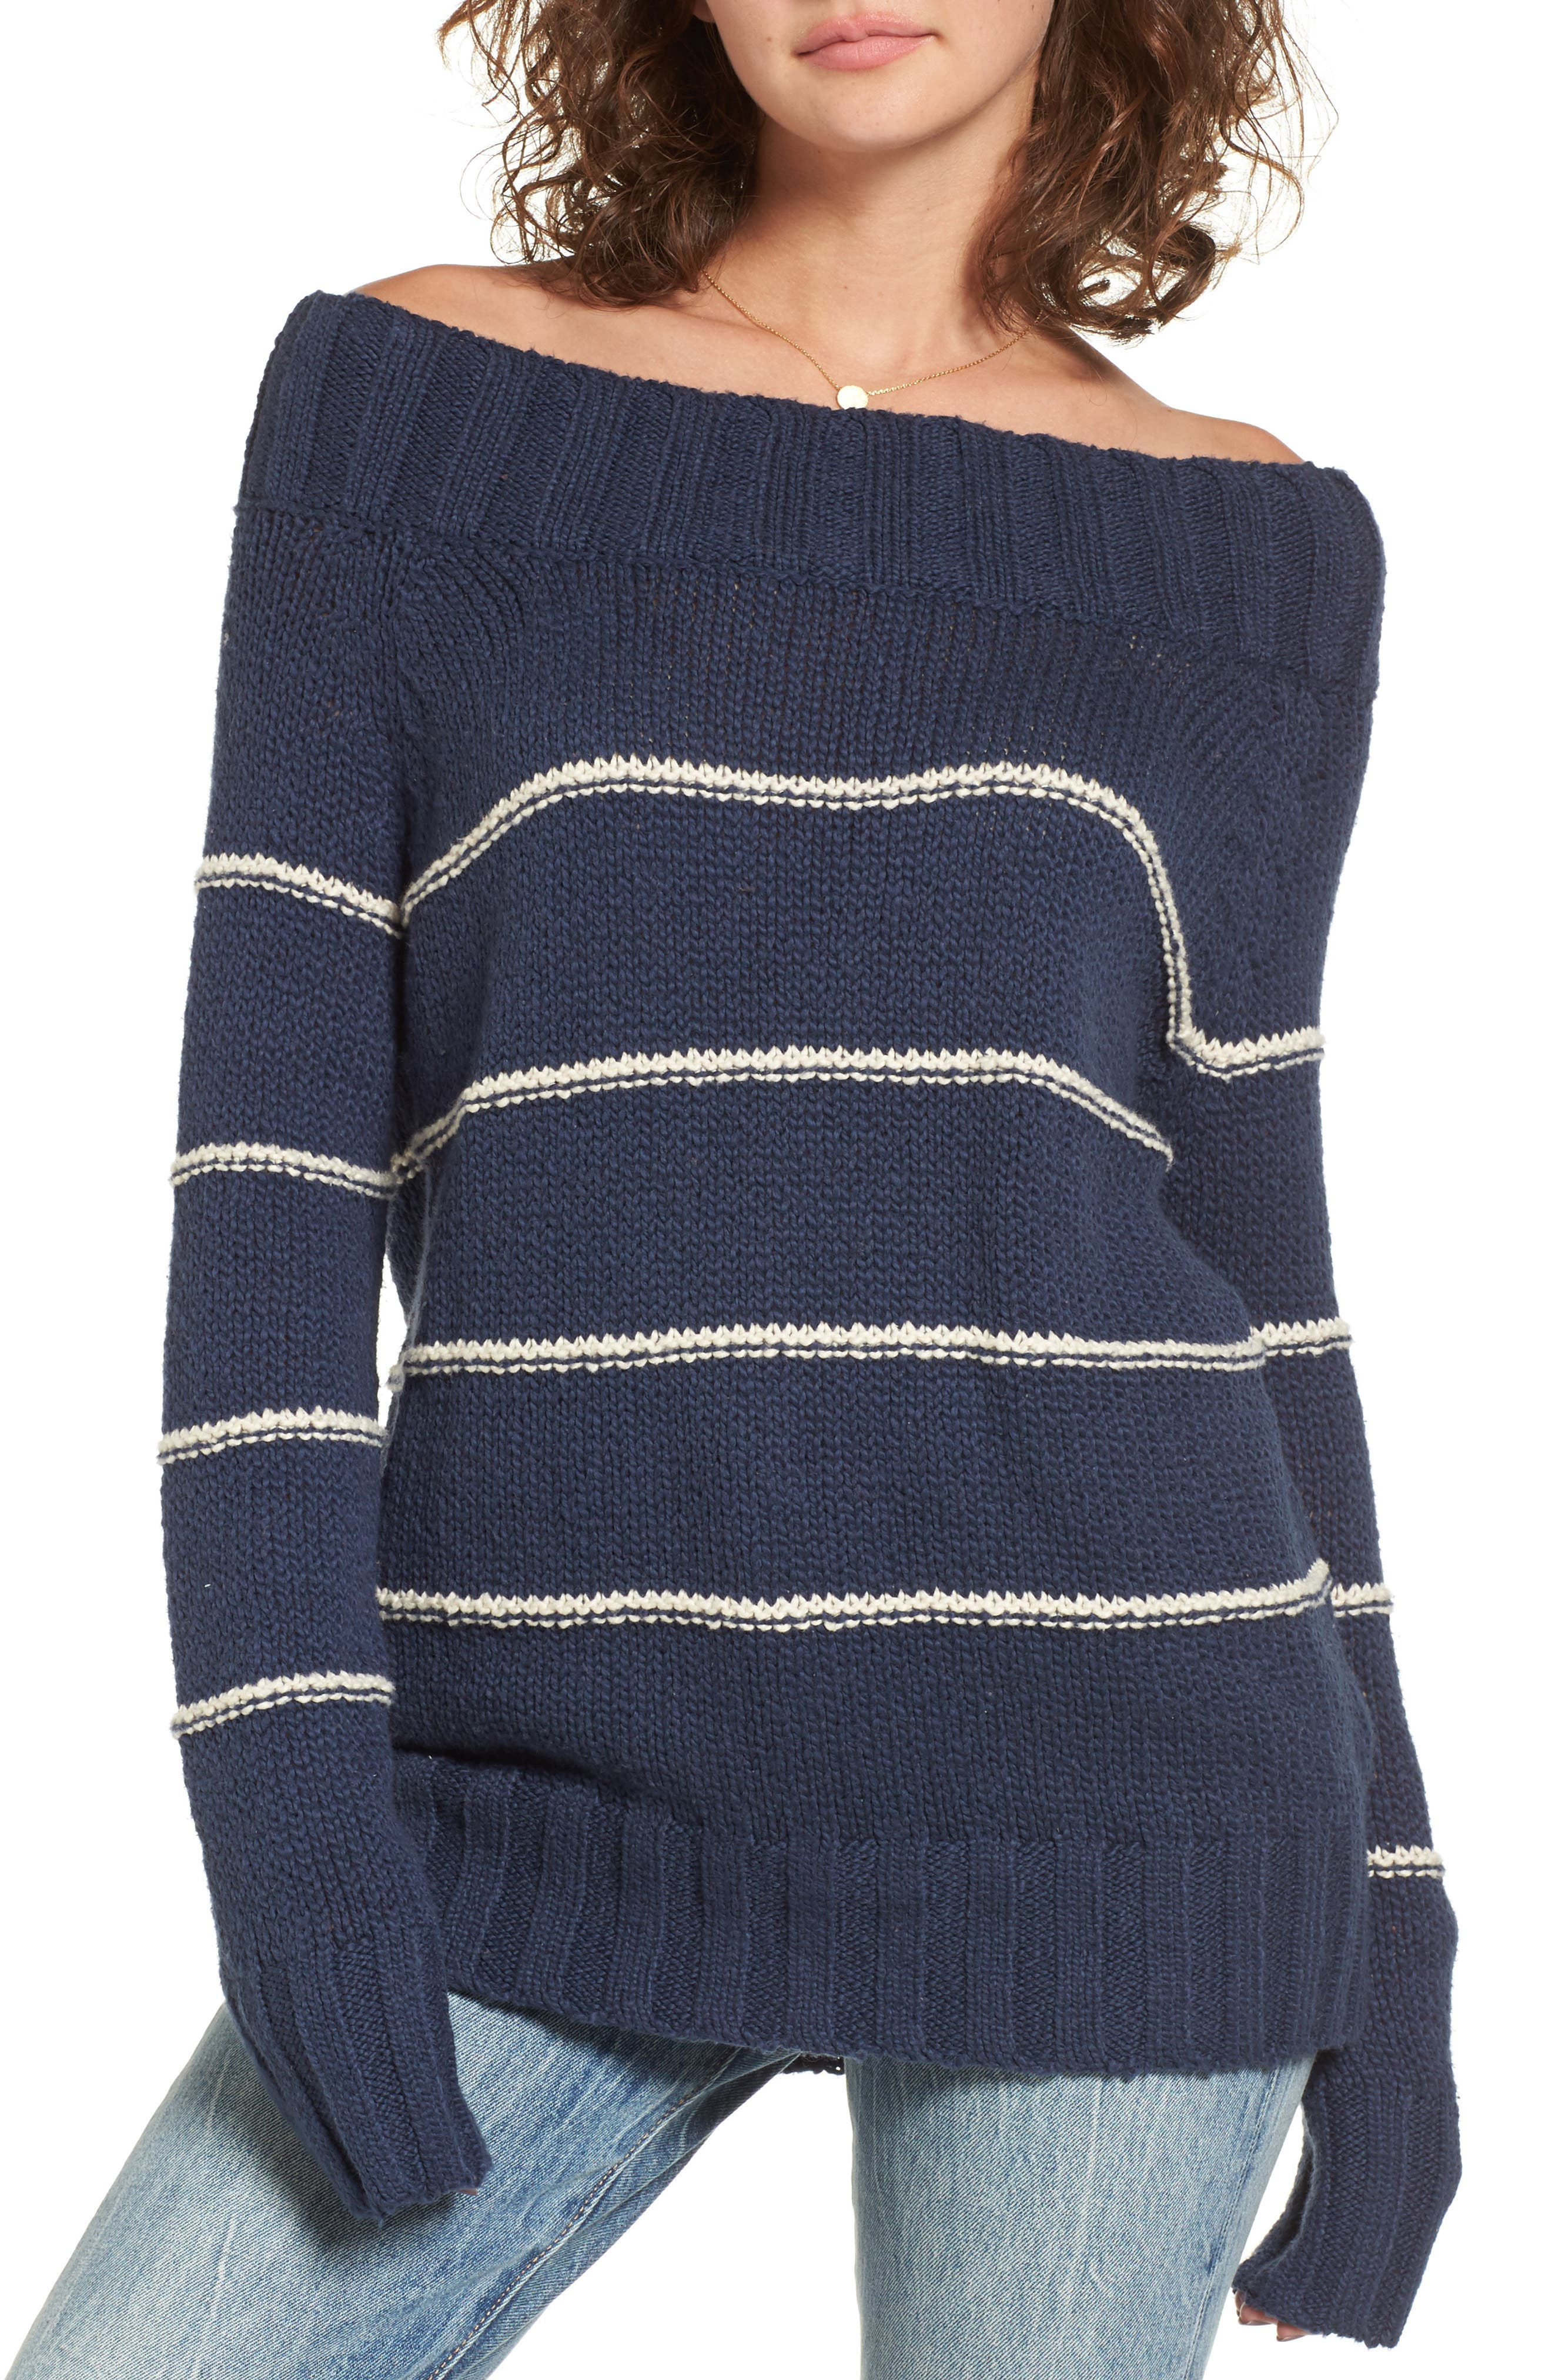 Snuggle Down Off the Shoulder Sweater,                             Alternate thumbnail 4, color,                             400